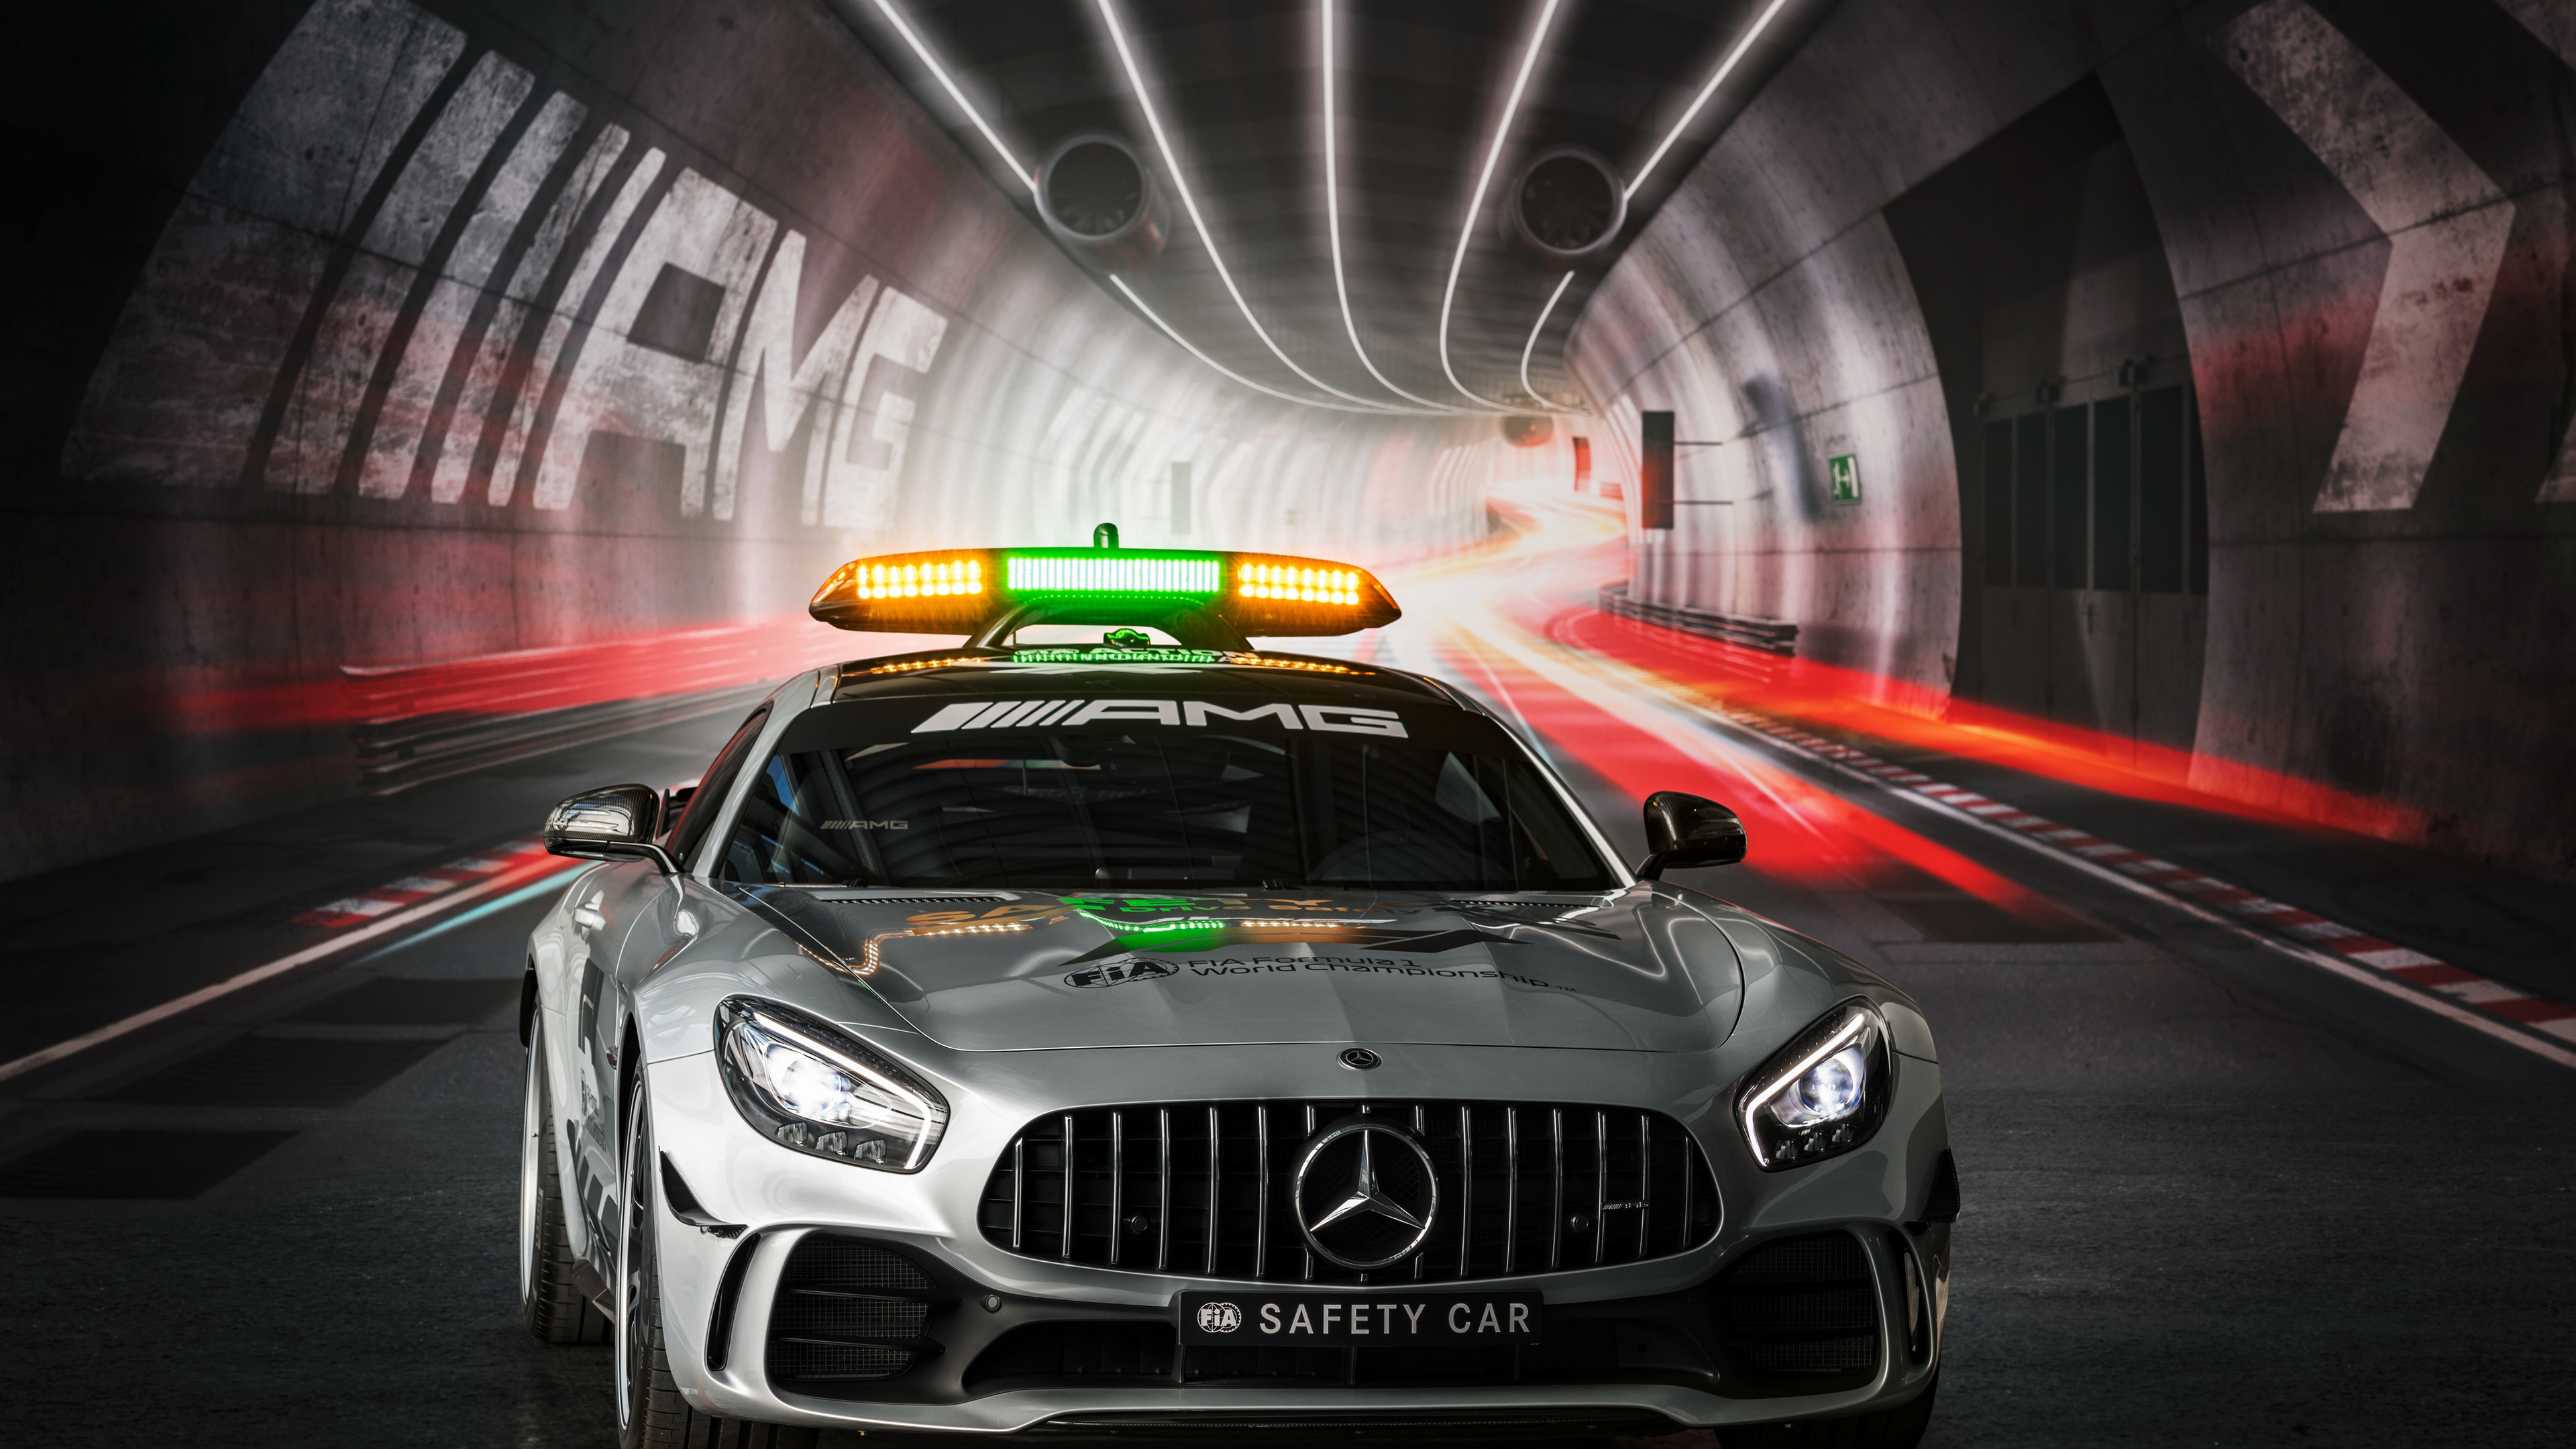 Wallpaper 4k Mercedes Amg Gt R F1 Safety Car 2018 Cars Wallpapers